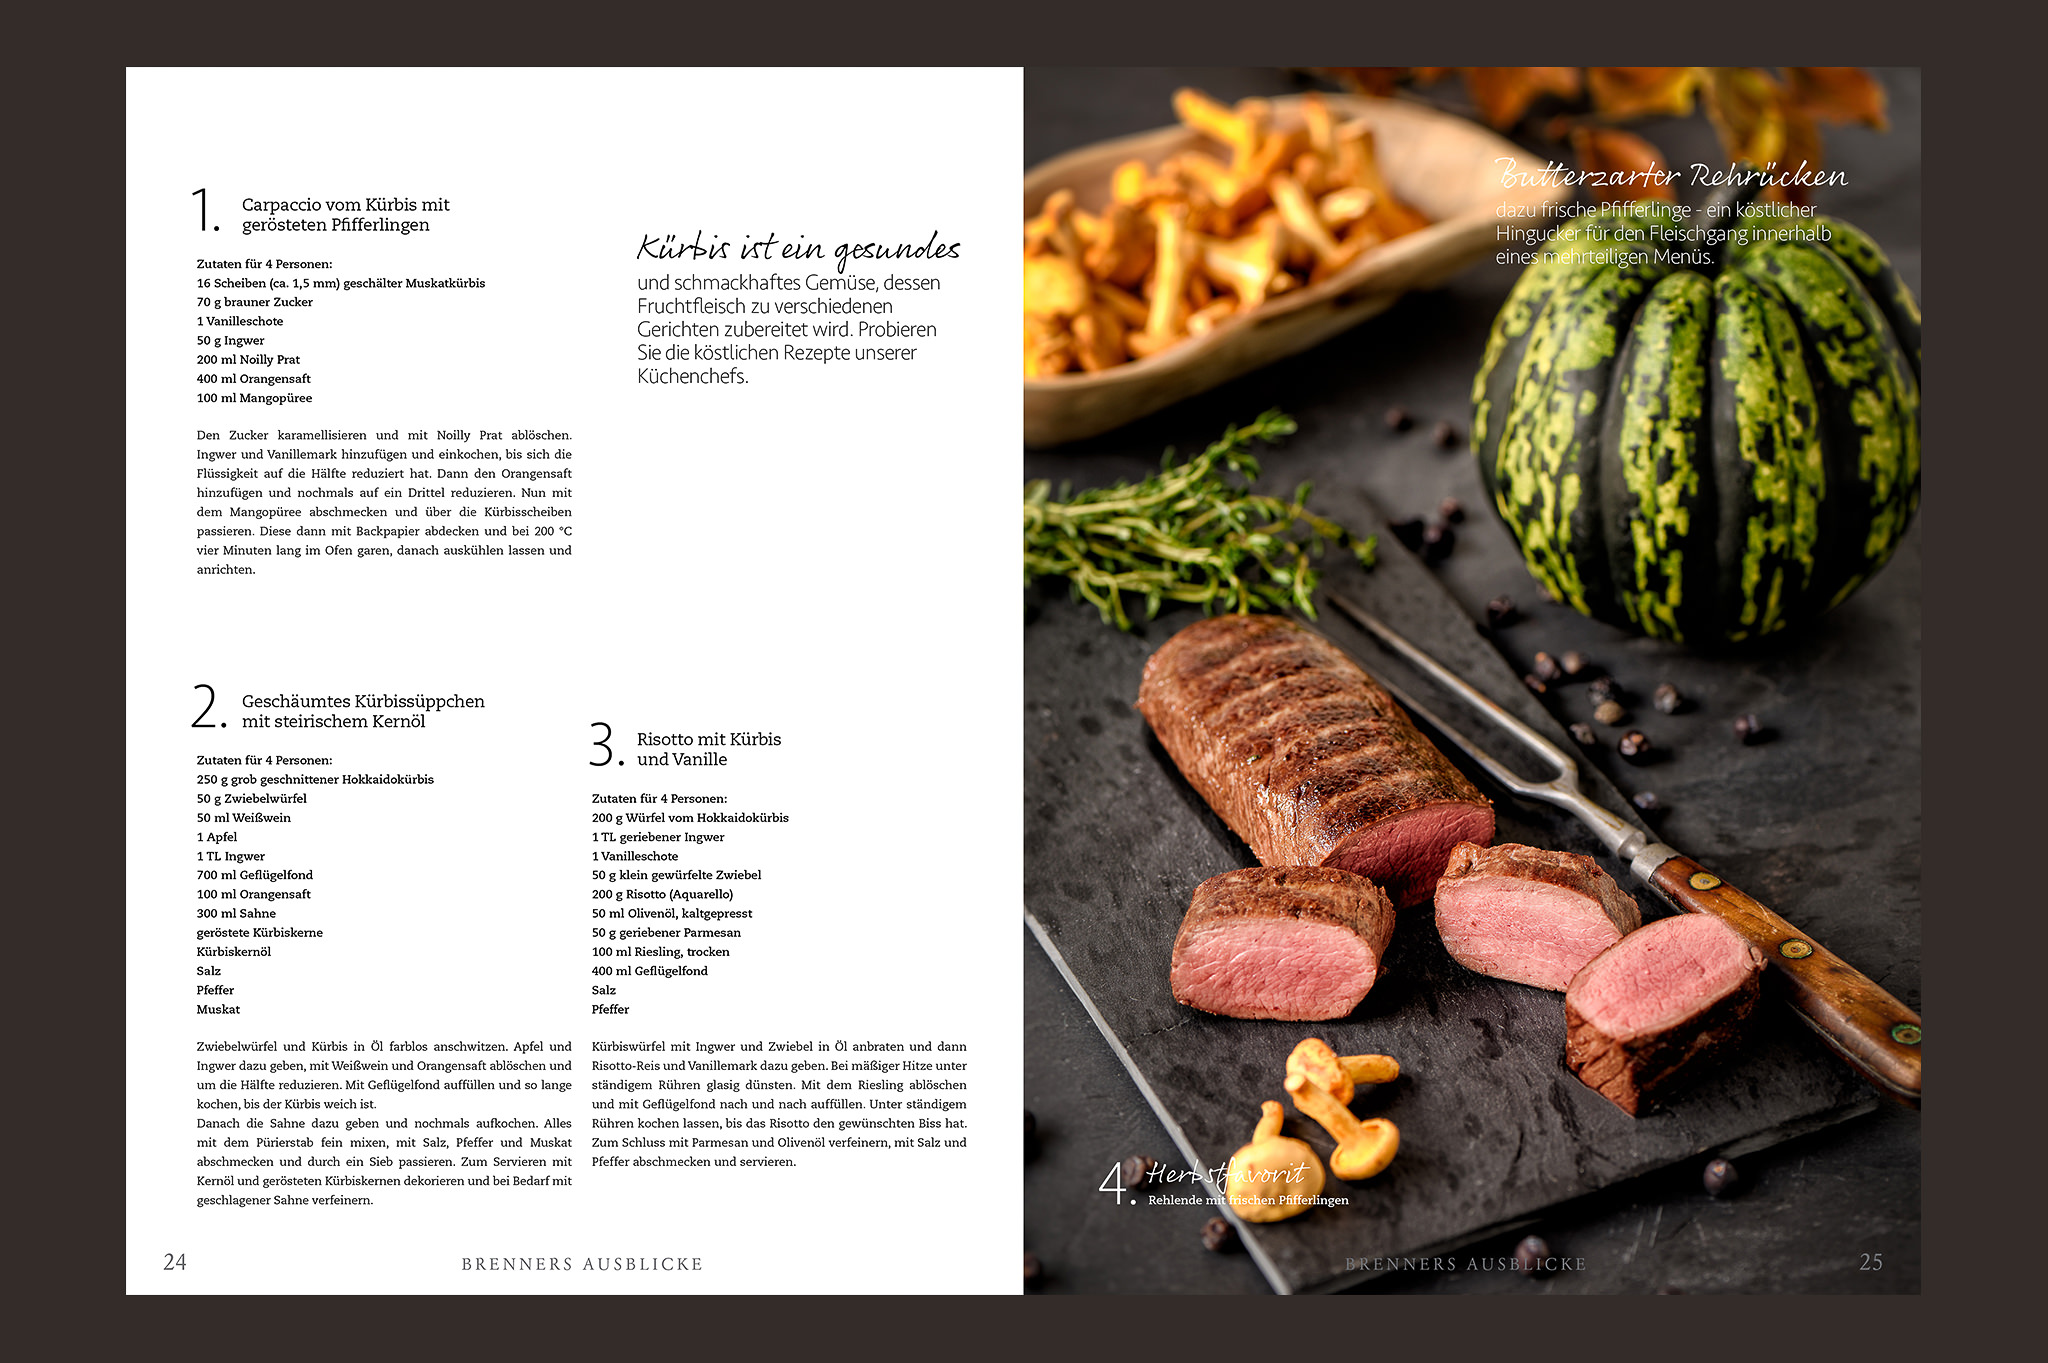 Tear-Sheet-Brenners-Ausblicke-Food-3